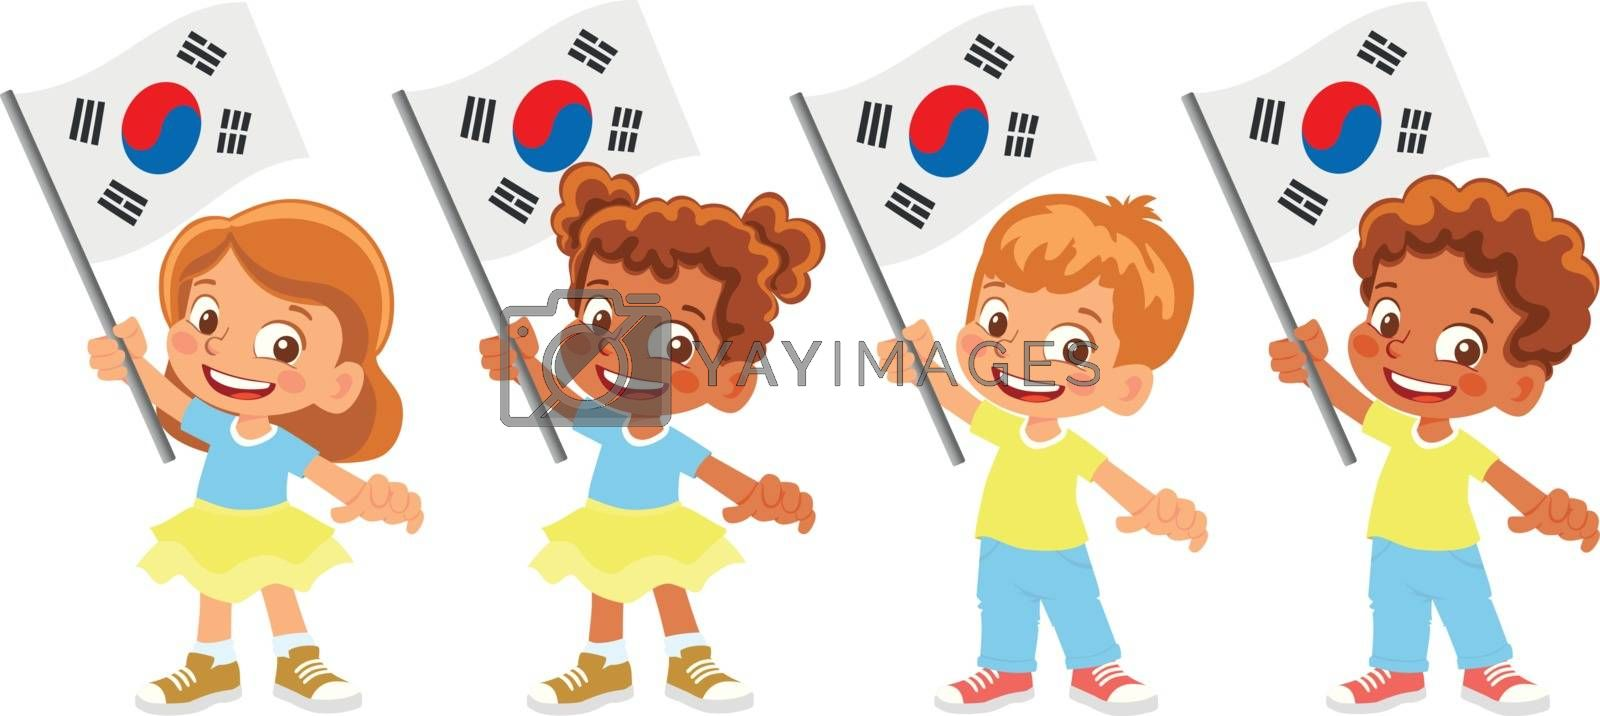 Royalty free image of south korea flag in hand set by Visual-Content